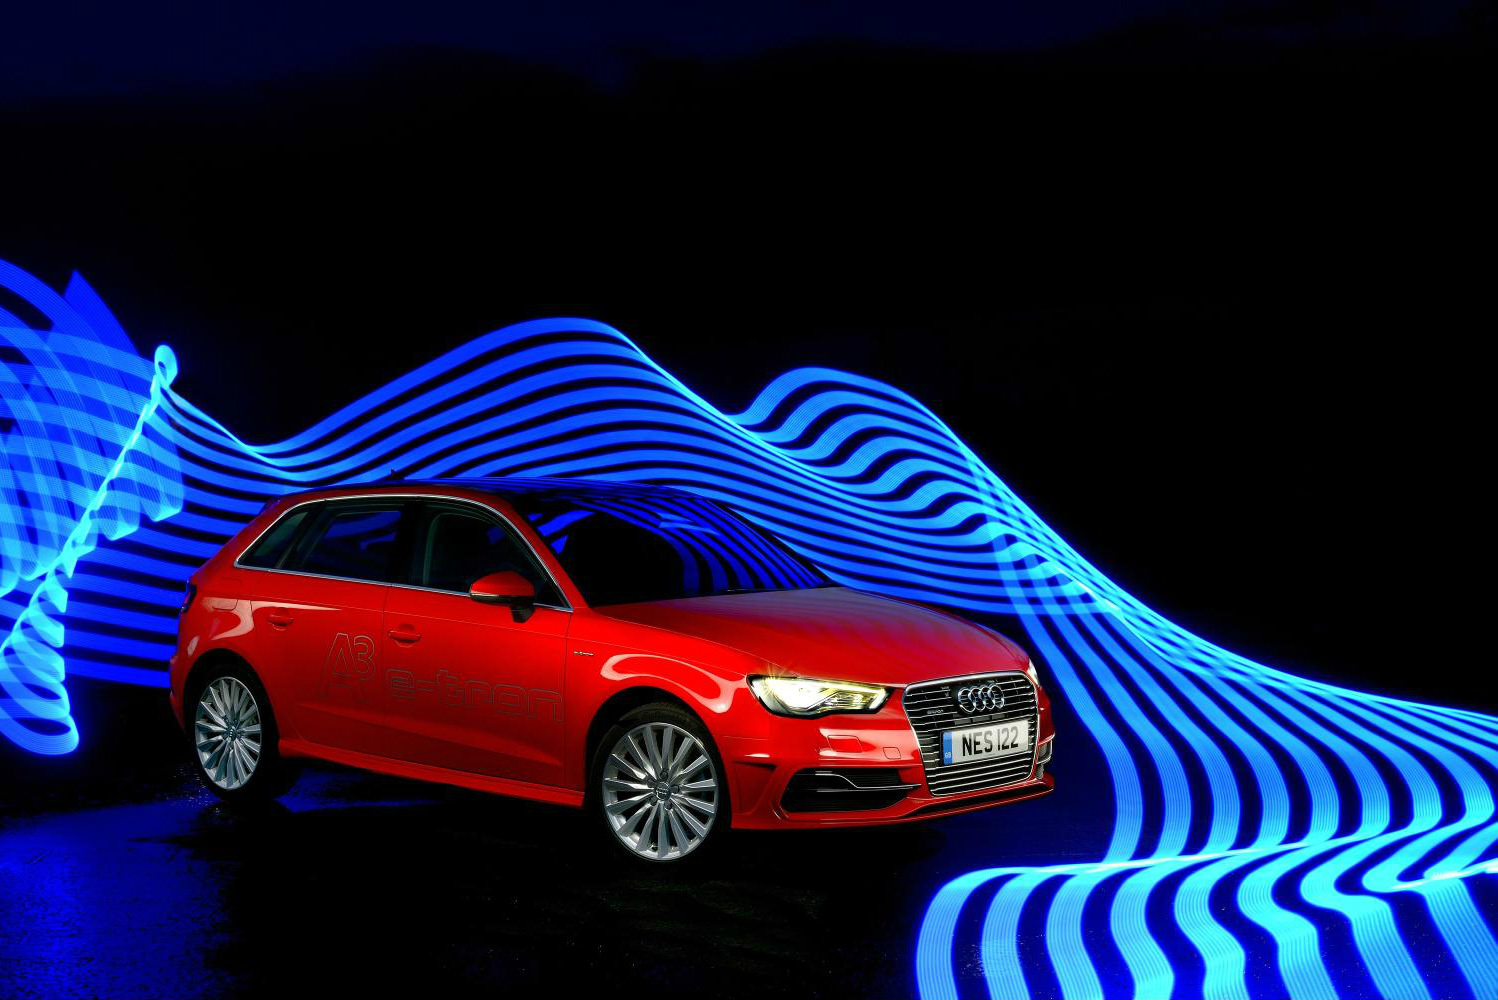 image of a red audi a3 etron plugin hybrid car exterior